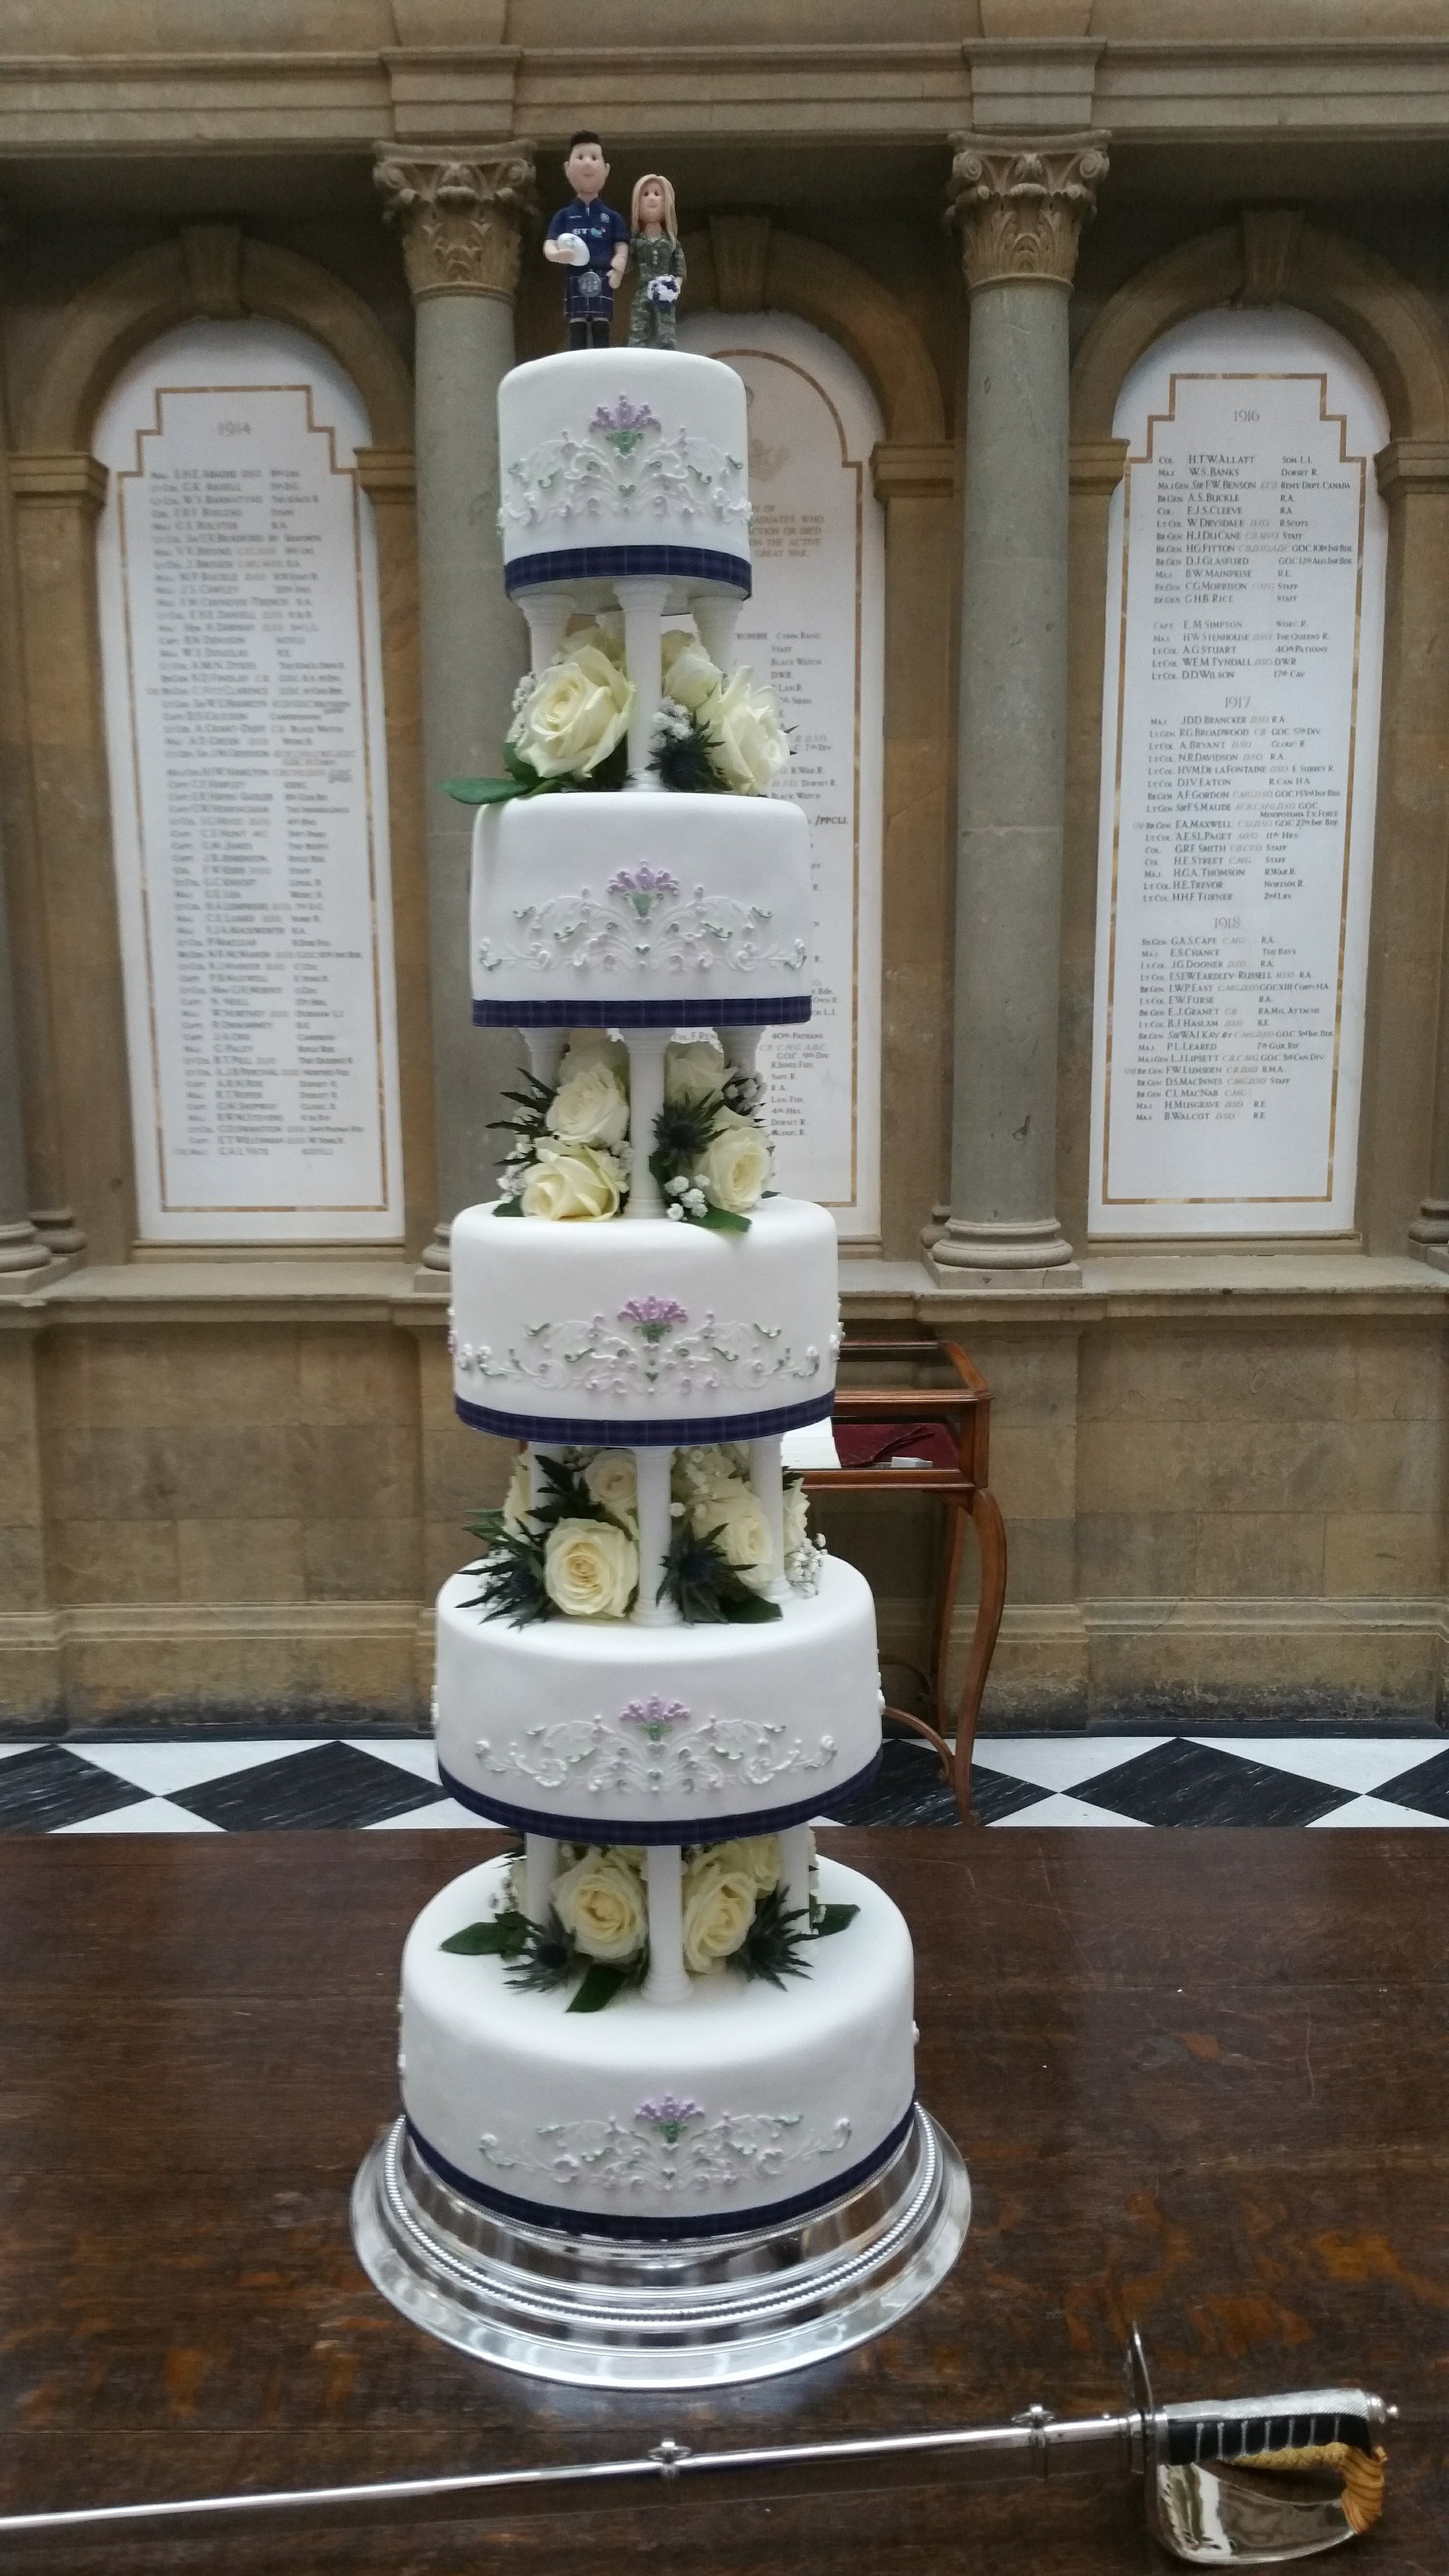 Traditional wedding cake - Fabulous 5 tier pillared, double height, traditional wedding cake. This wonderful cake was decorated with fresh flowers and featured hand piped royal icing designs.